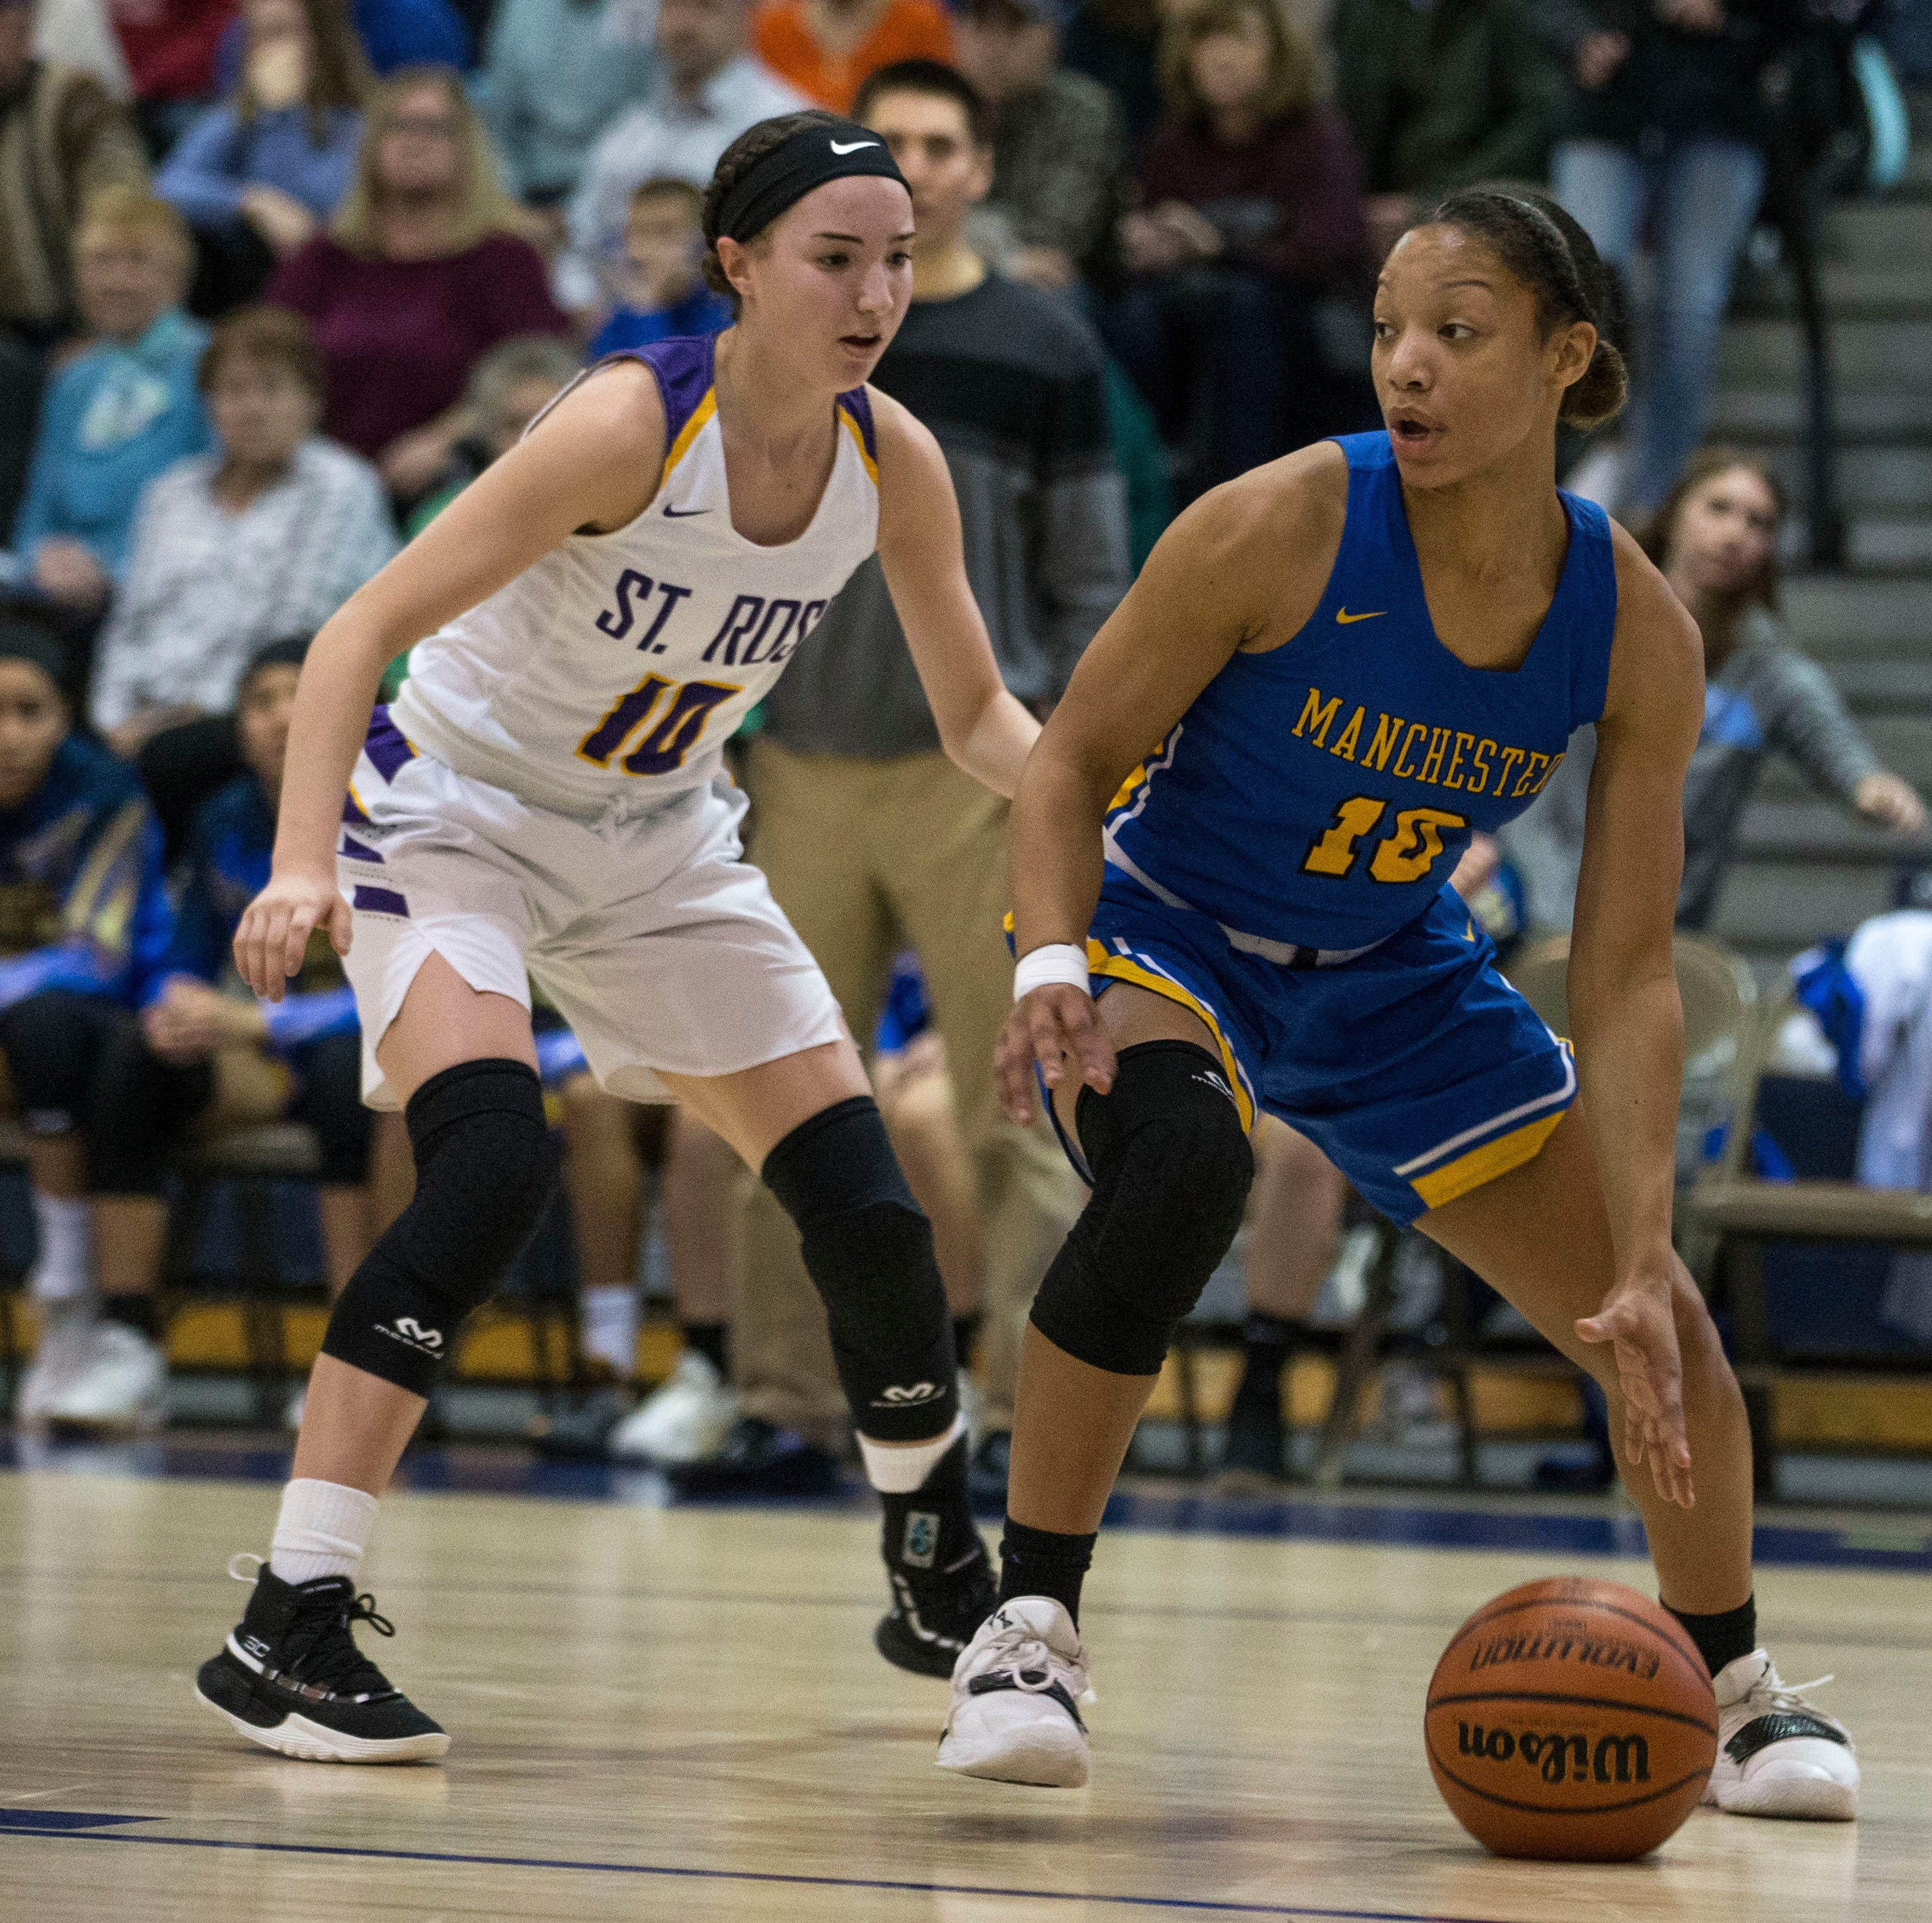 NJ girls hoops: Tournament of Champions seeds released